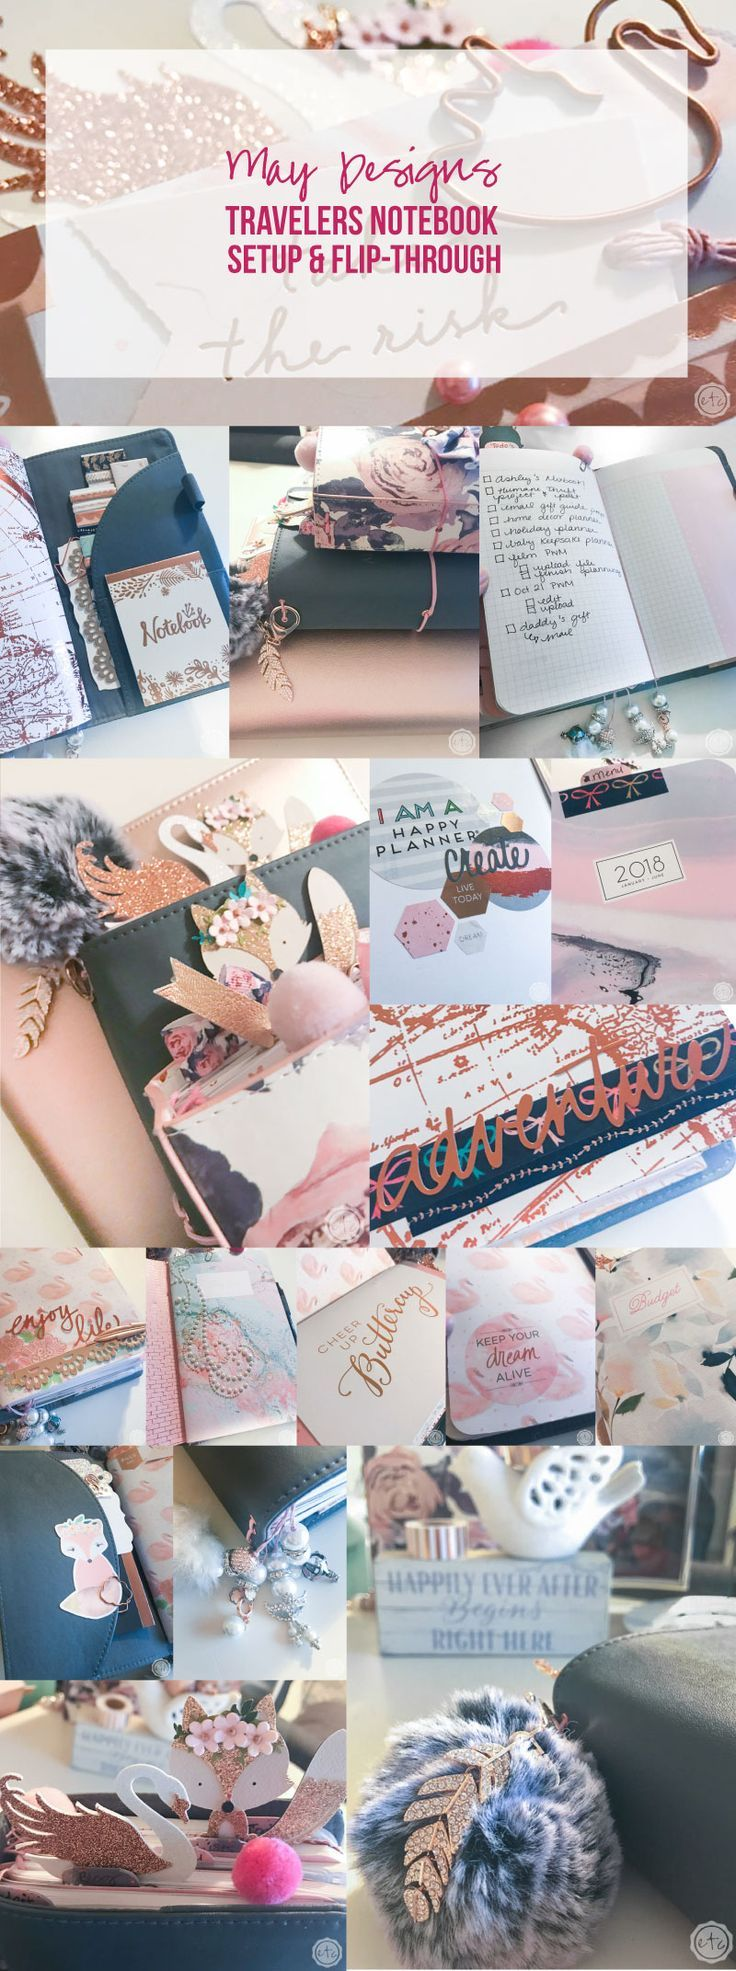 May Designs Travelers Notebook Setup and Flip-through